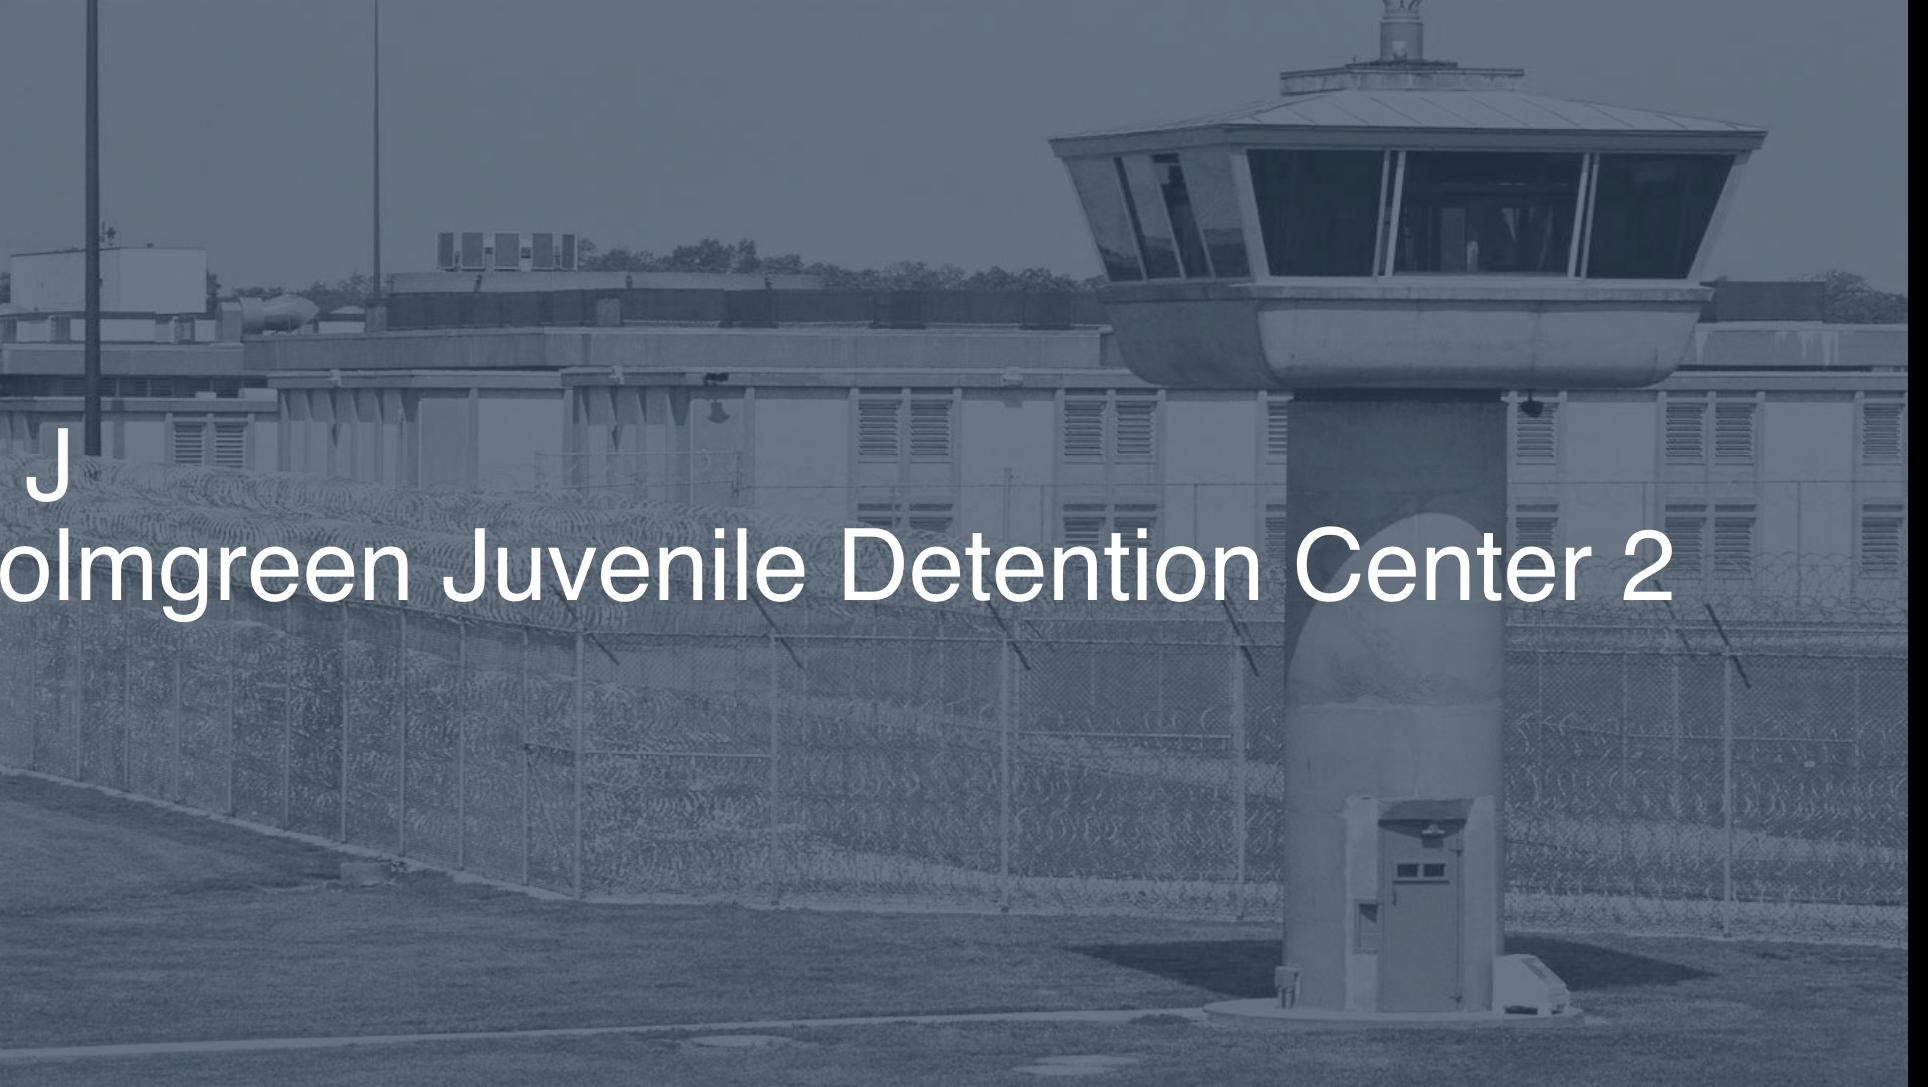 R. J. Holmgreen Juvenile Detention Center correctional facility picture